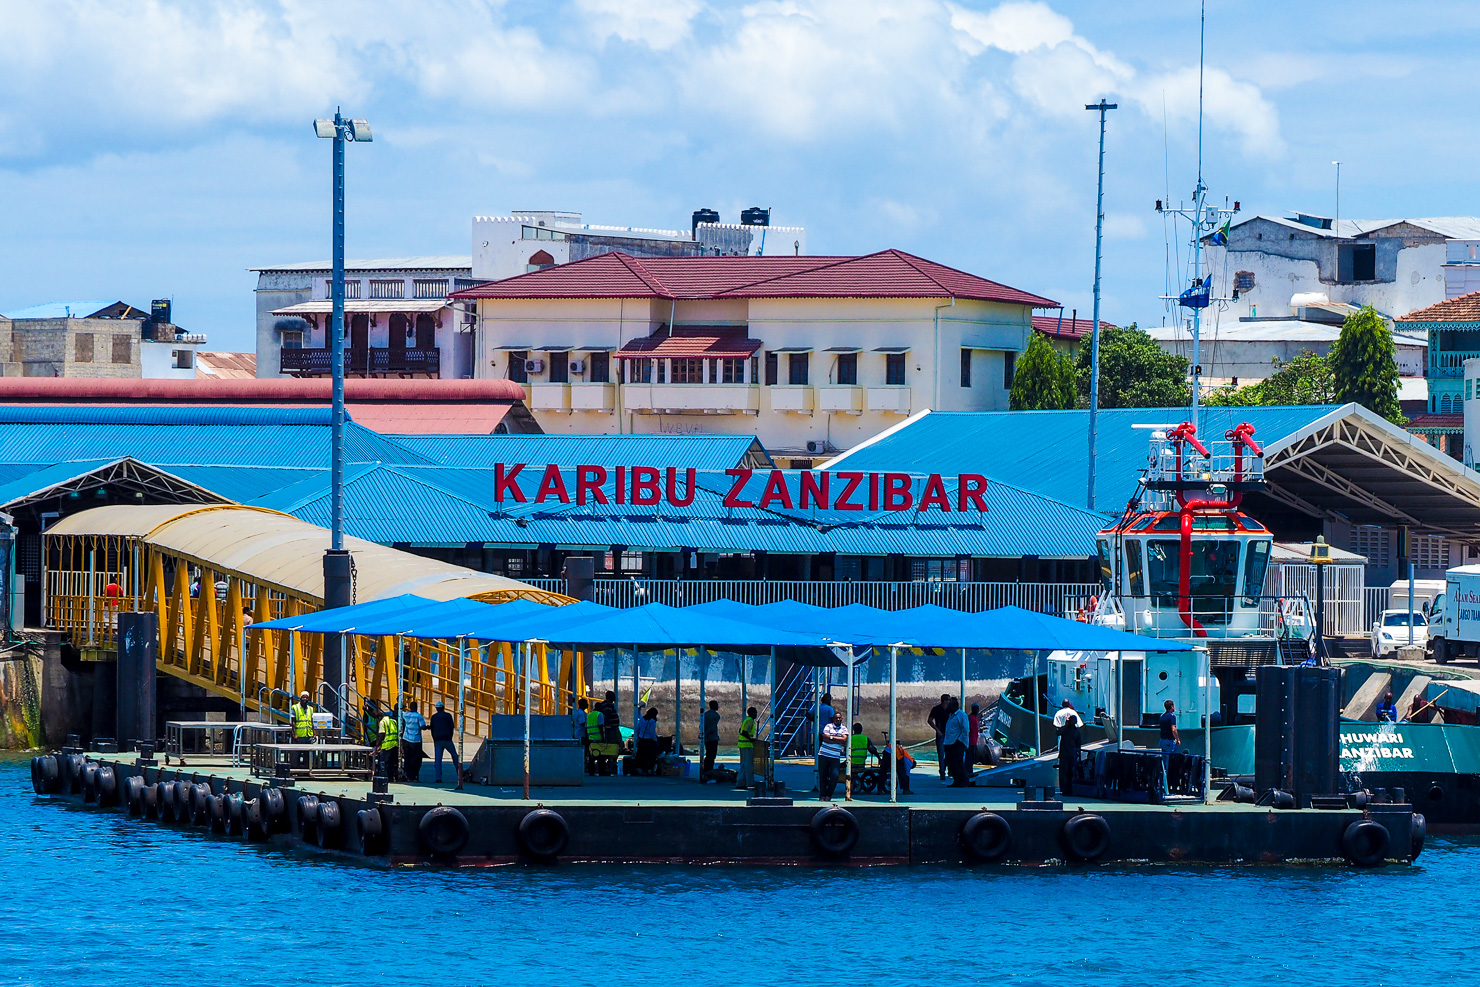 A Guide to Taking the Dar es Salaam to Zanzibar Ferry